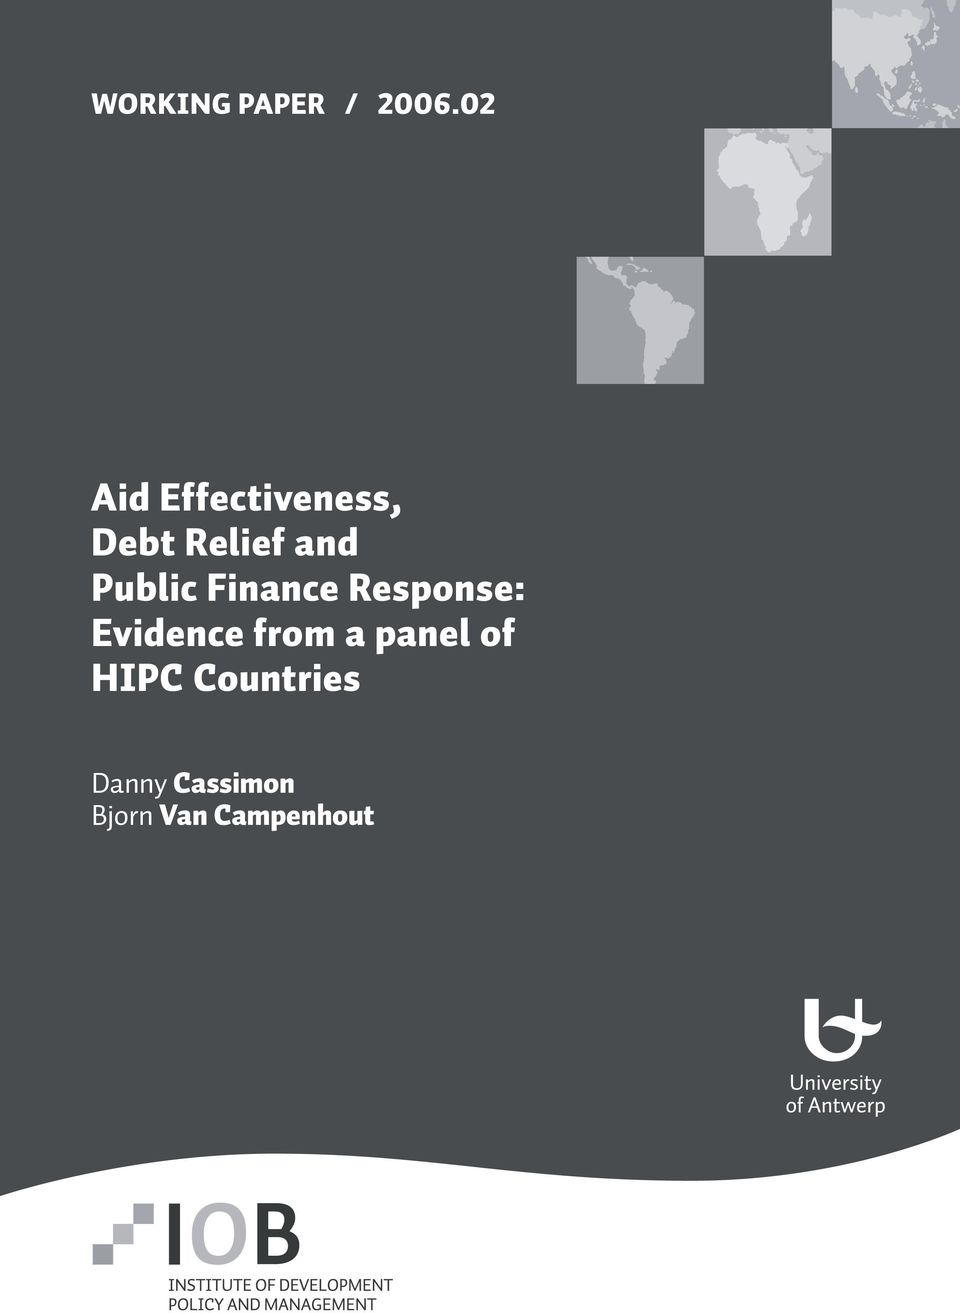 Public Finance Response: Evidence from